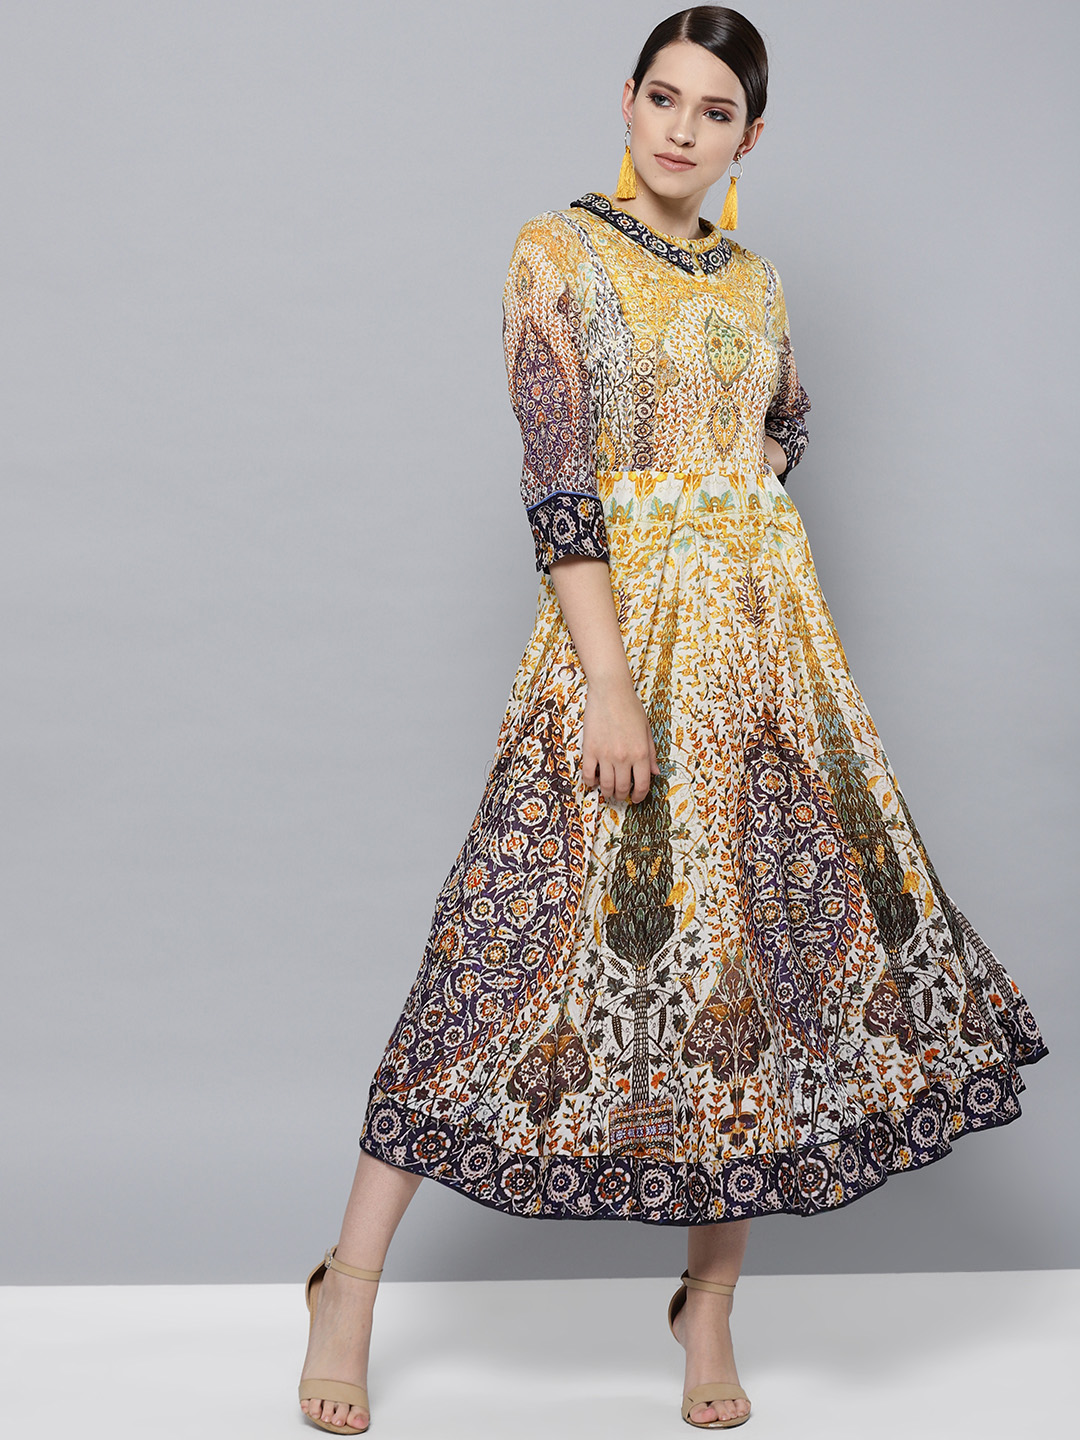 Label Ritu Kumar Women Yellow & Purple Printed A-Line Dress Price in India